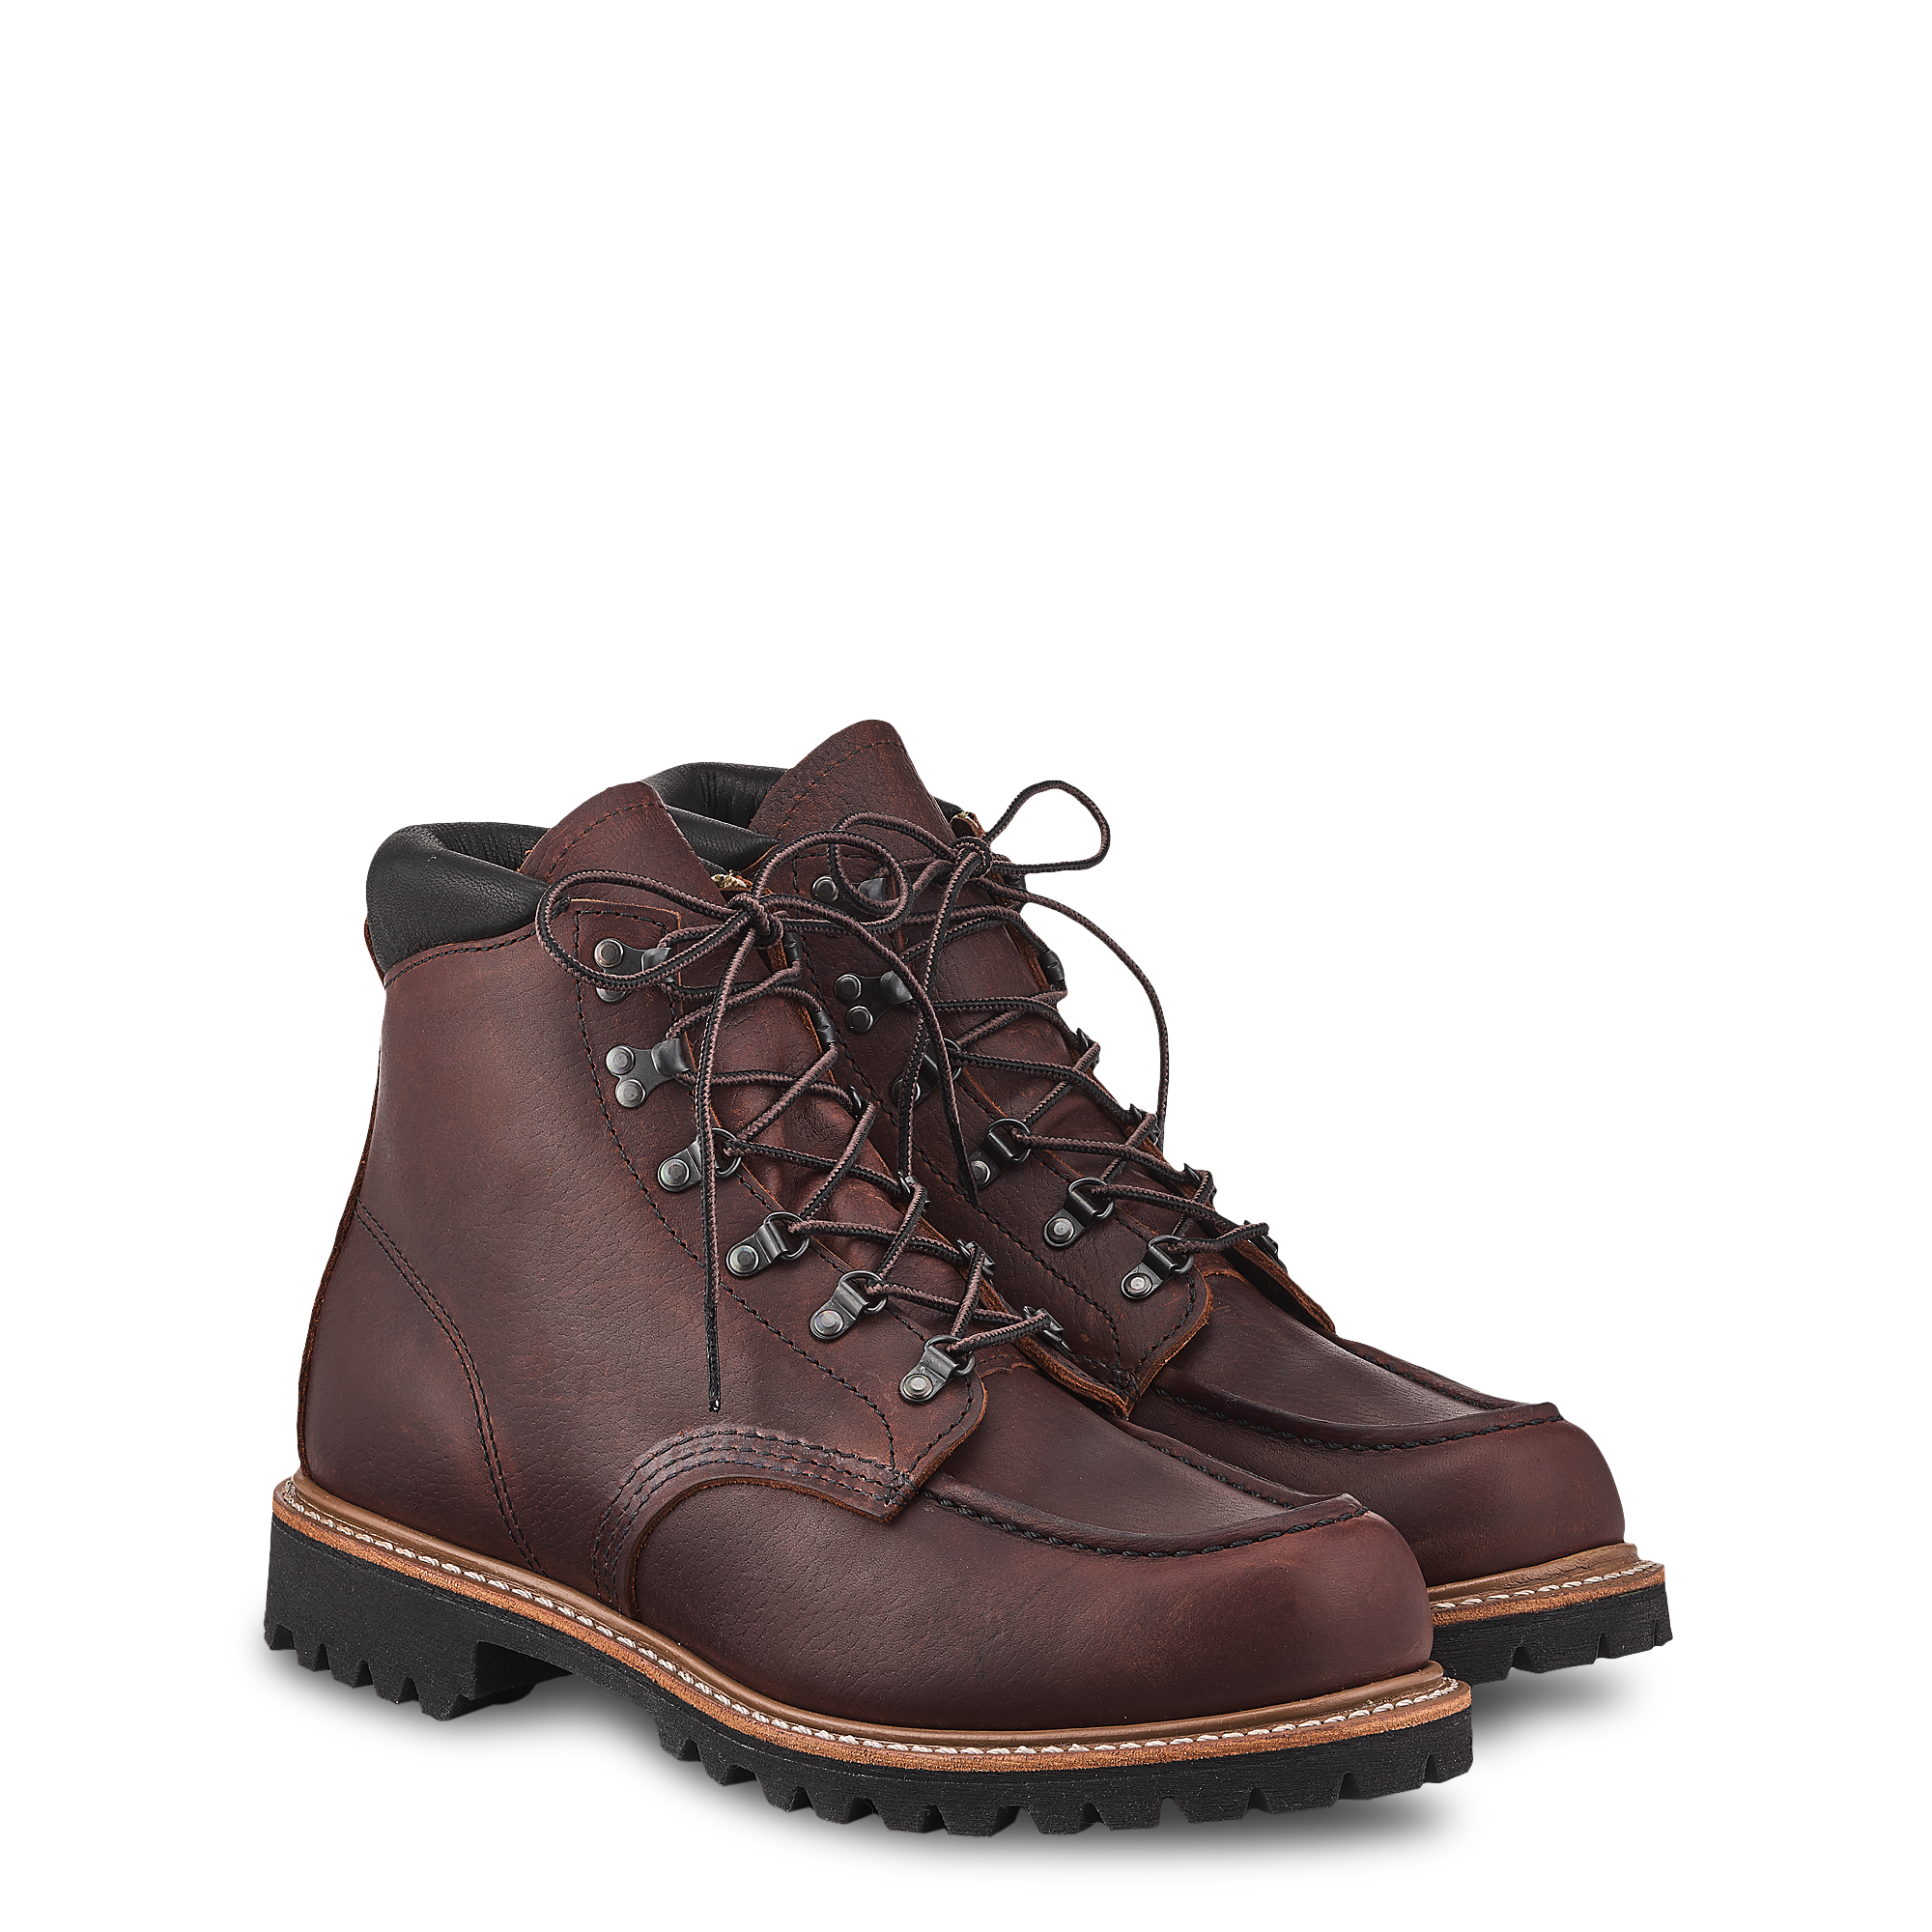 redwing boots leicester